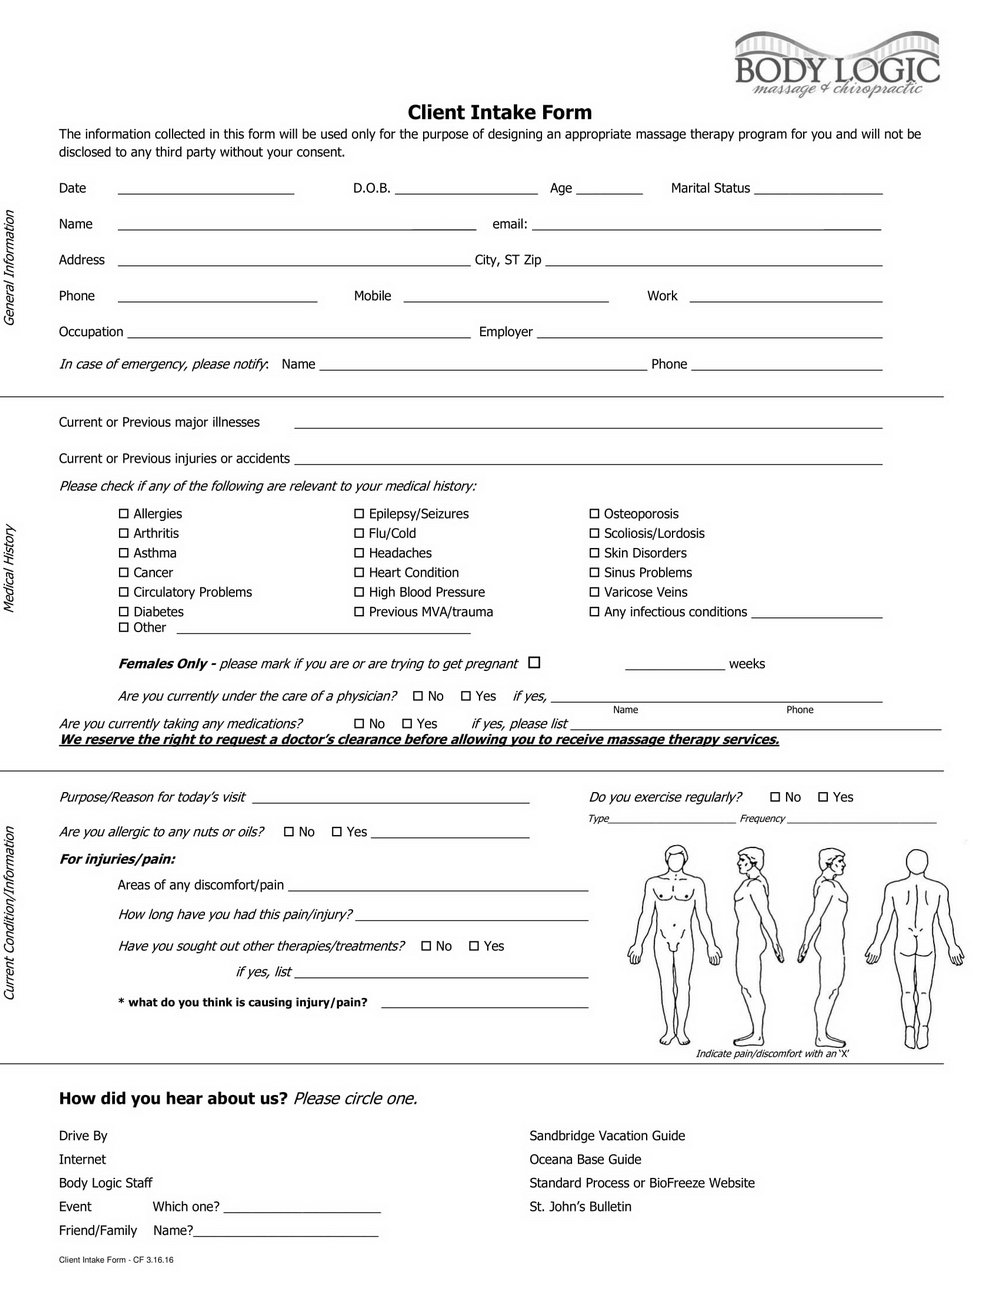 Massage Therapy Client Intake Form App